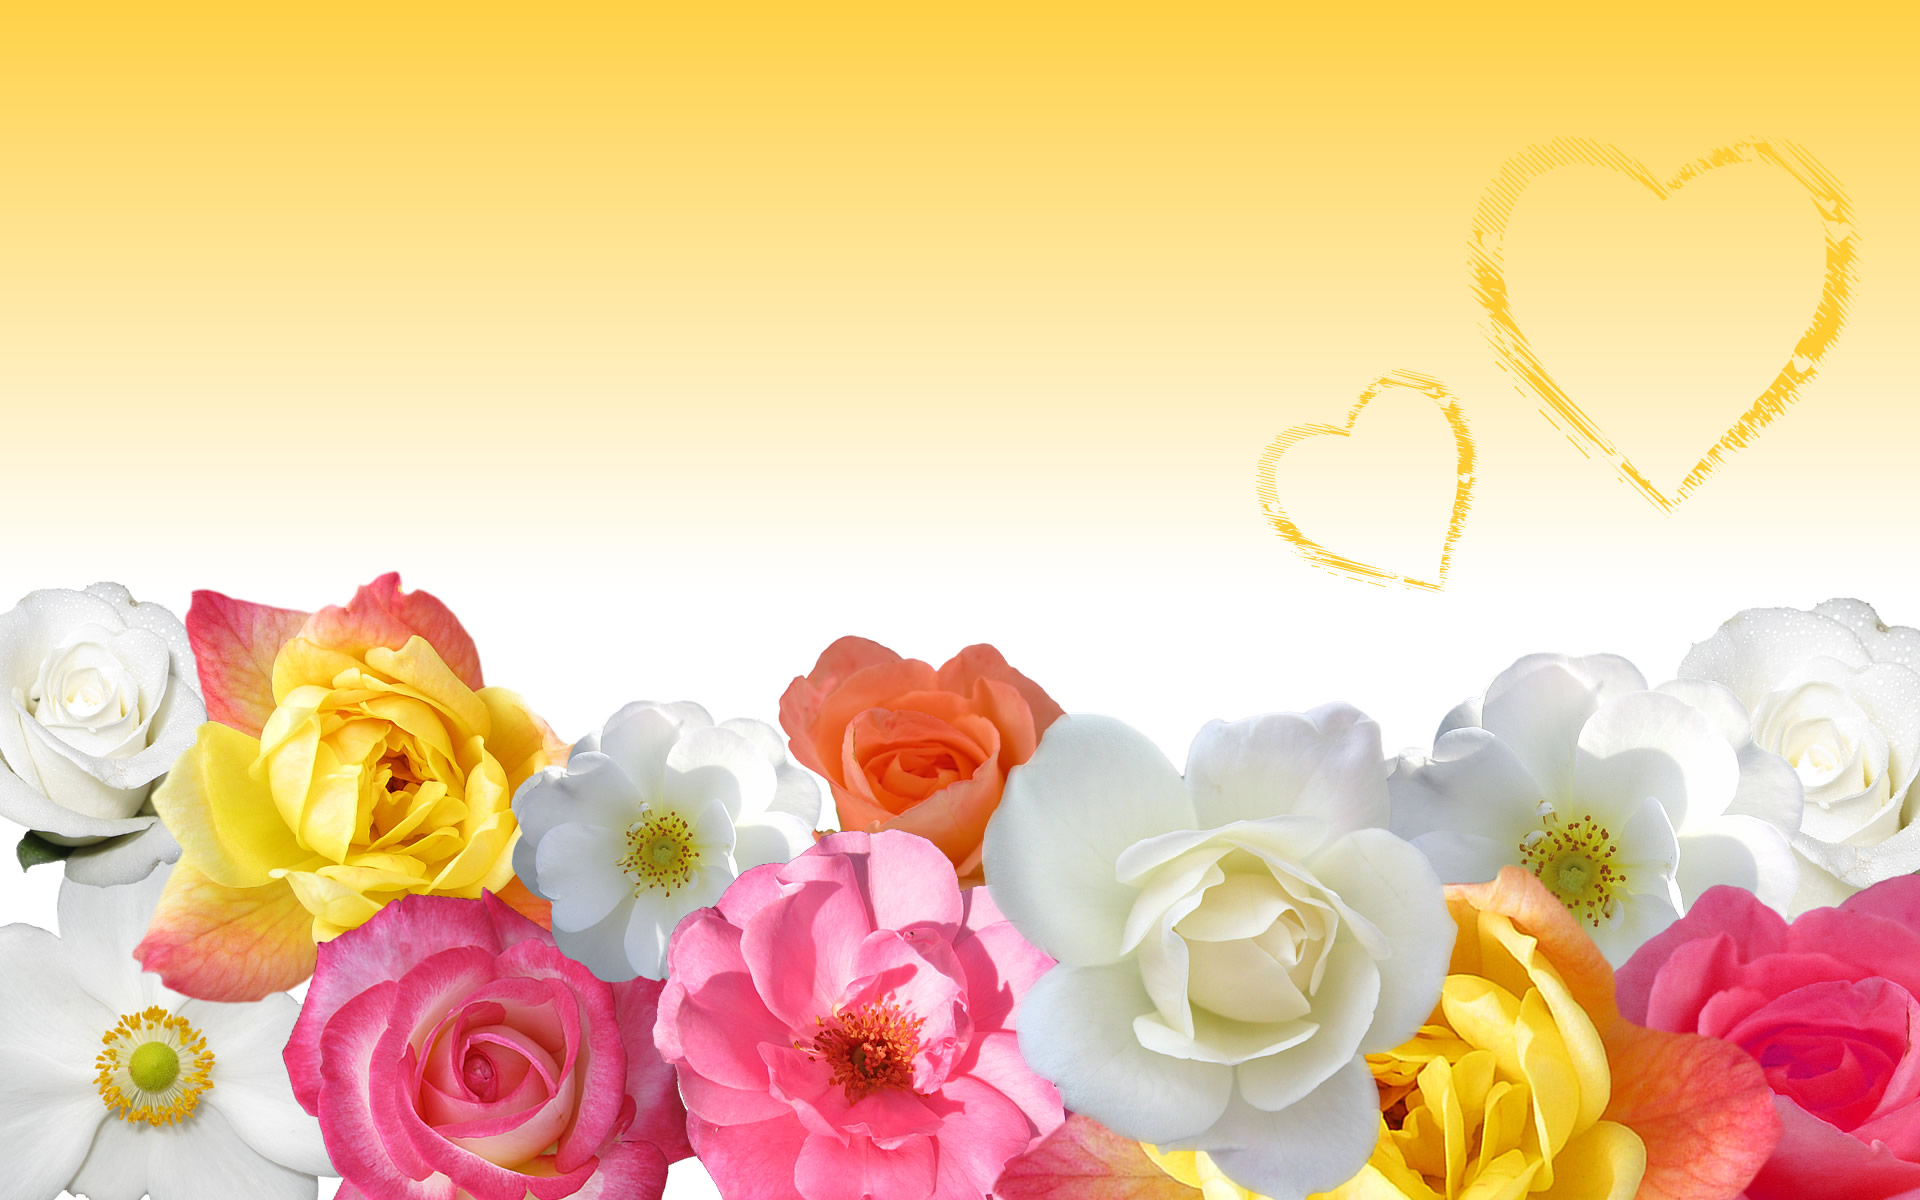 Love Flower Wallpaper Images : Flower Love Wallpaper in Yellow